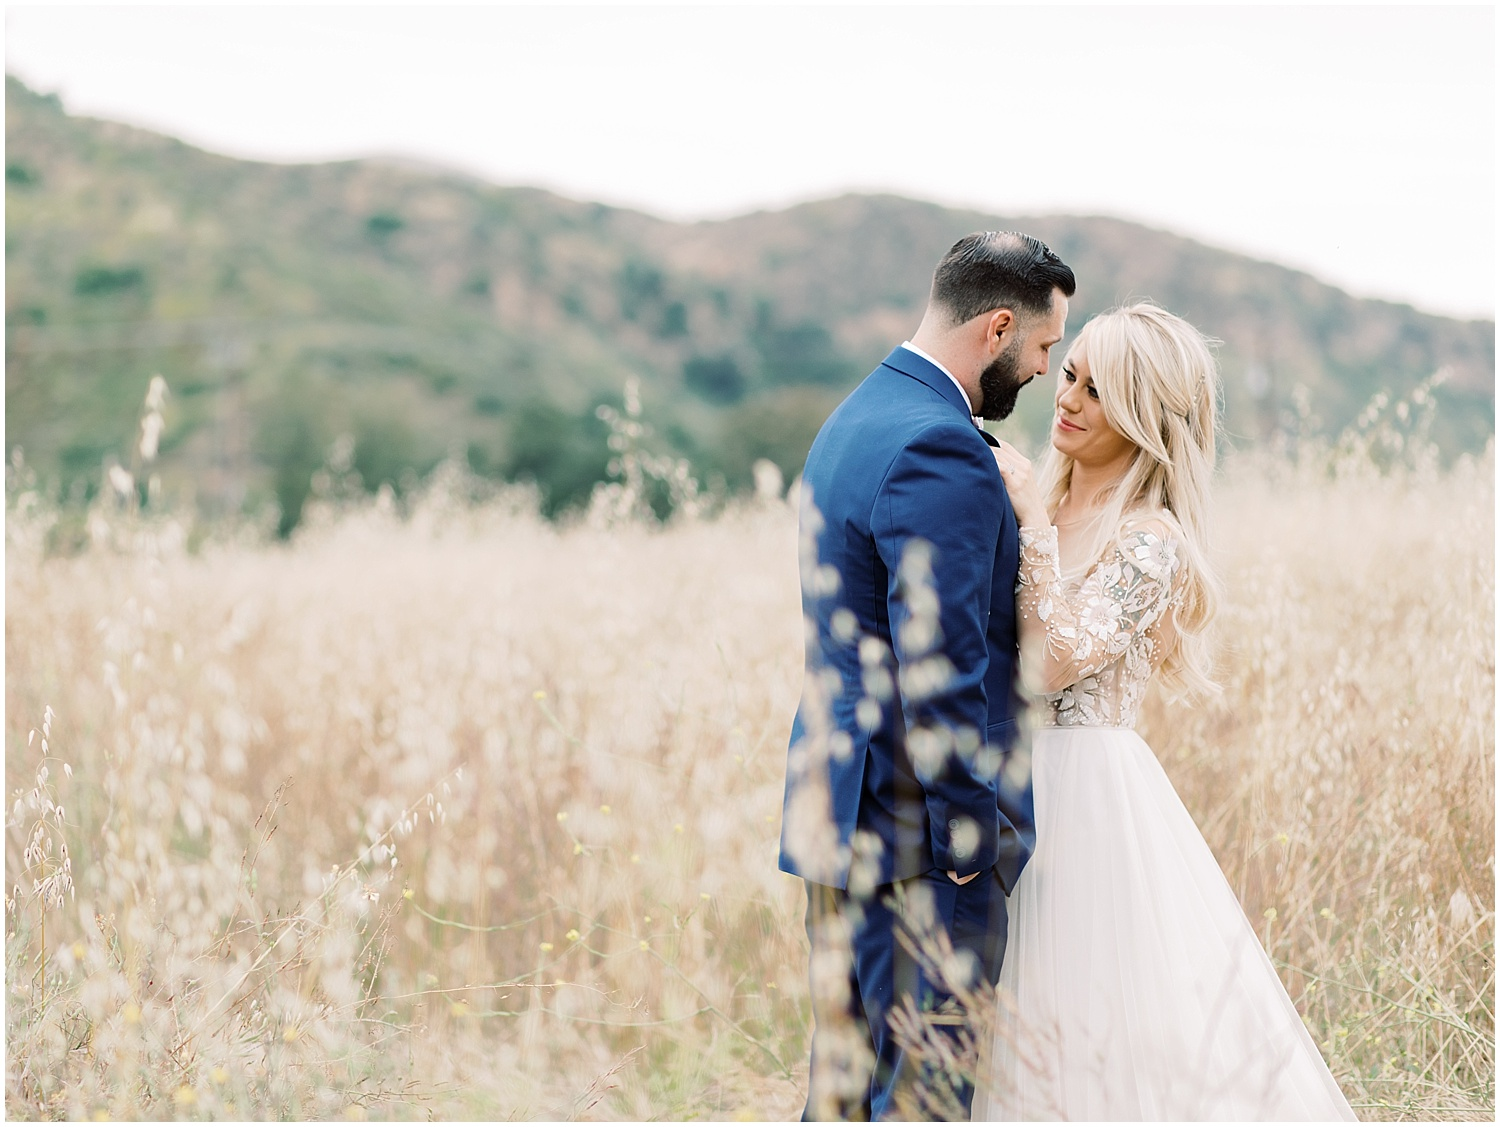 Palm Springs Wedding | San Diego Photographer | Joshua Tree Elopement_0346.jpg